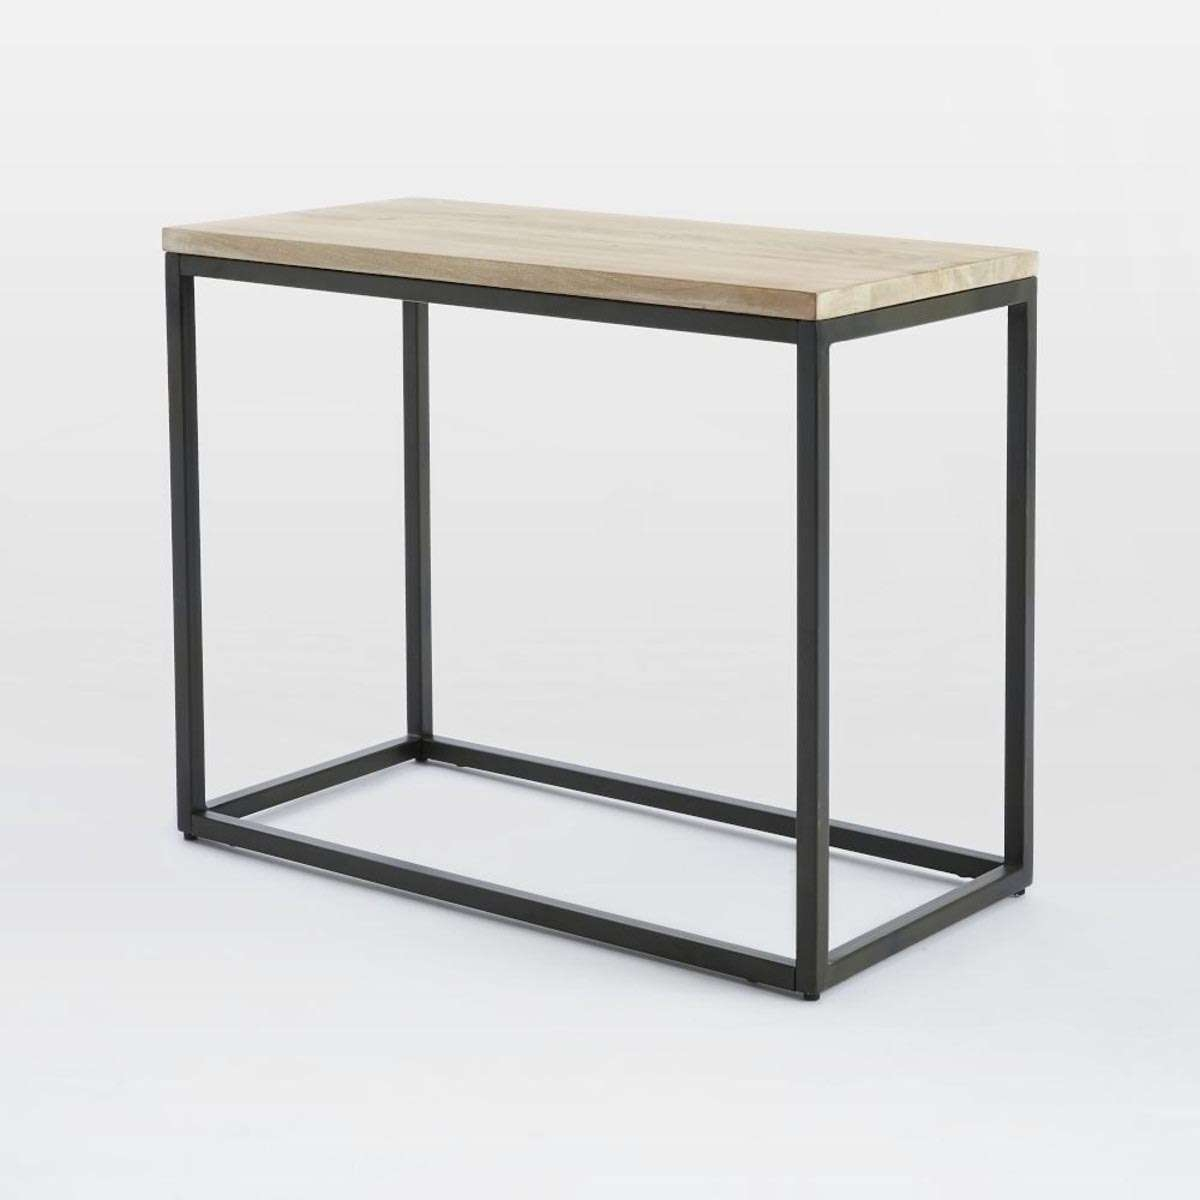 Well Known Square Coffee Tables Within Coffee Table : Awesome Long Coffee Table Contemporary Coffee (View 19 of 20)